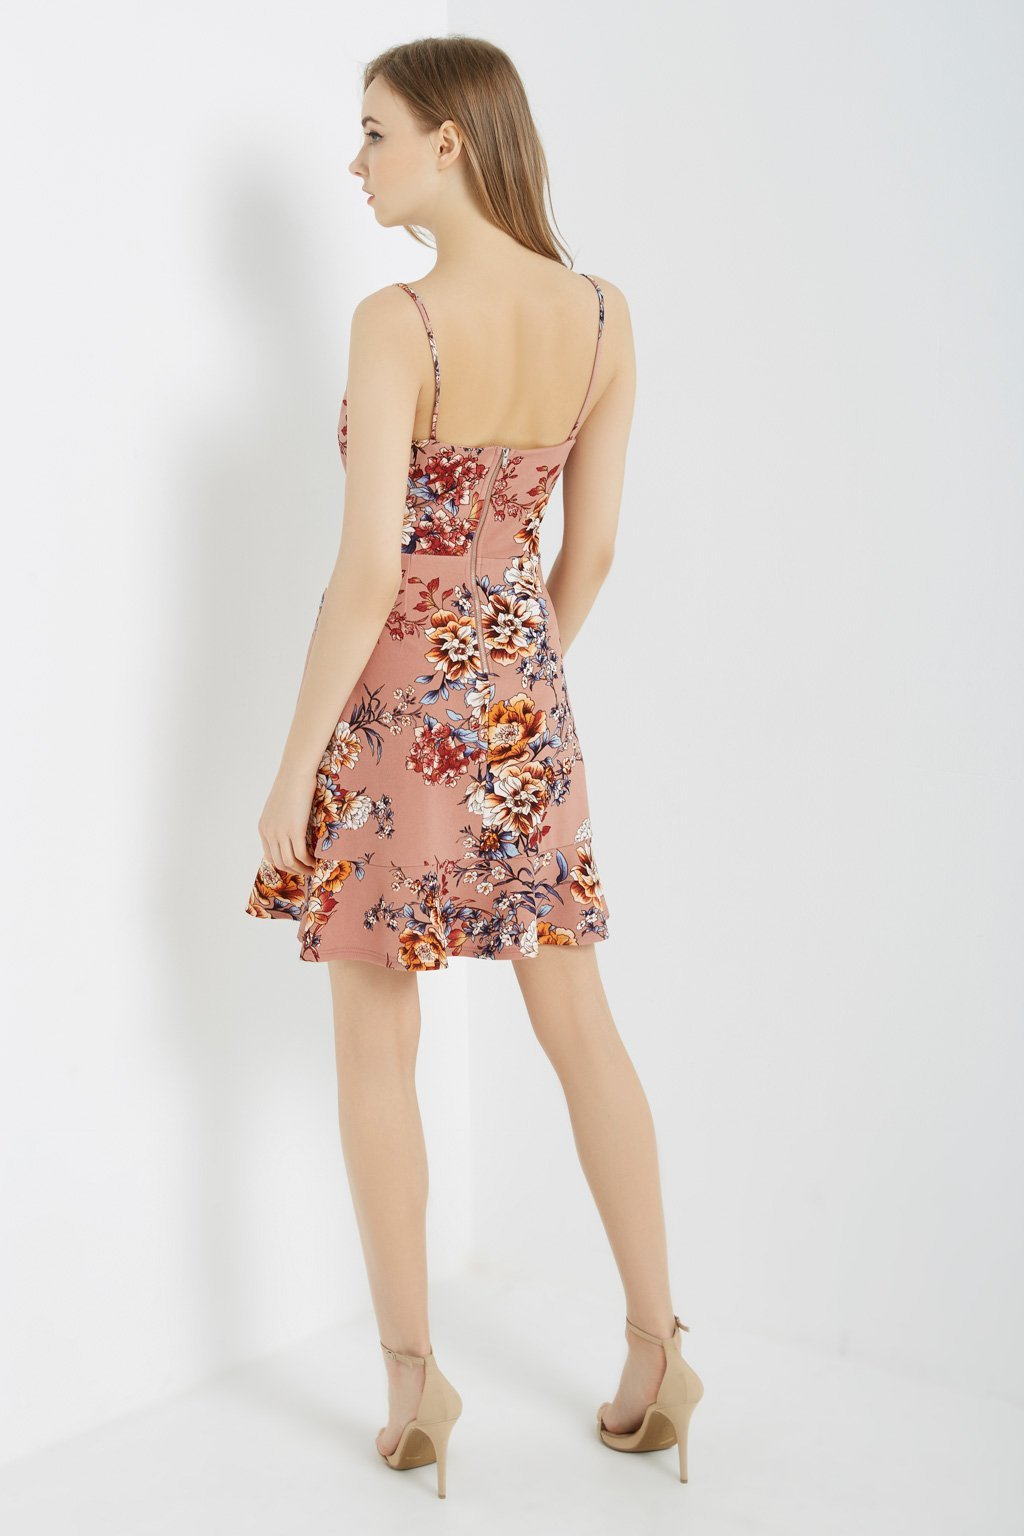 Poshsquare Dress Floral Ruffle-Hem Cami Dress